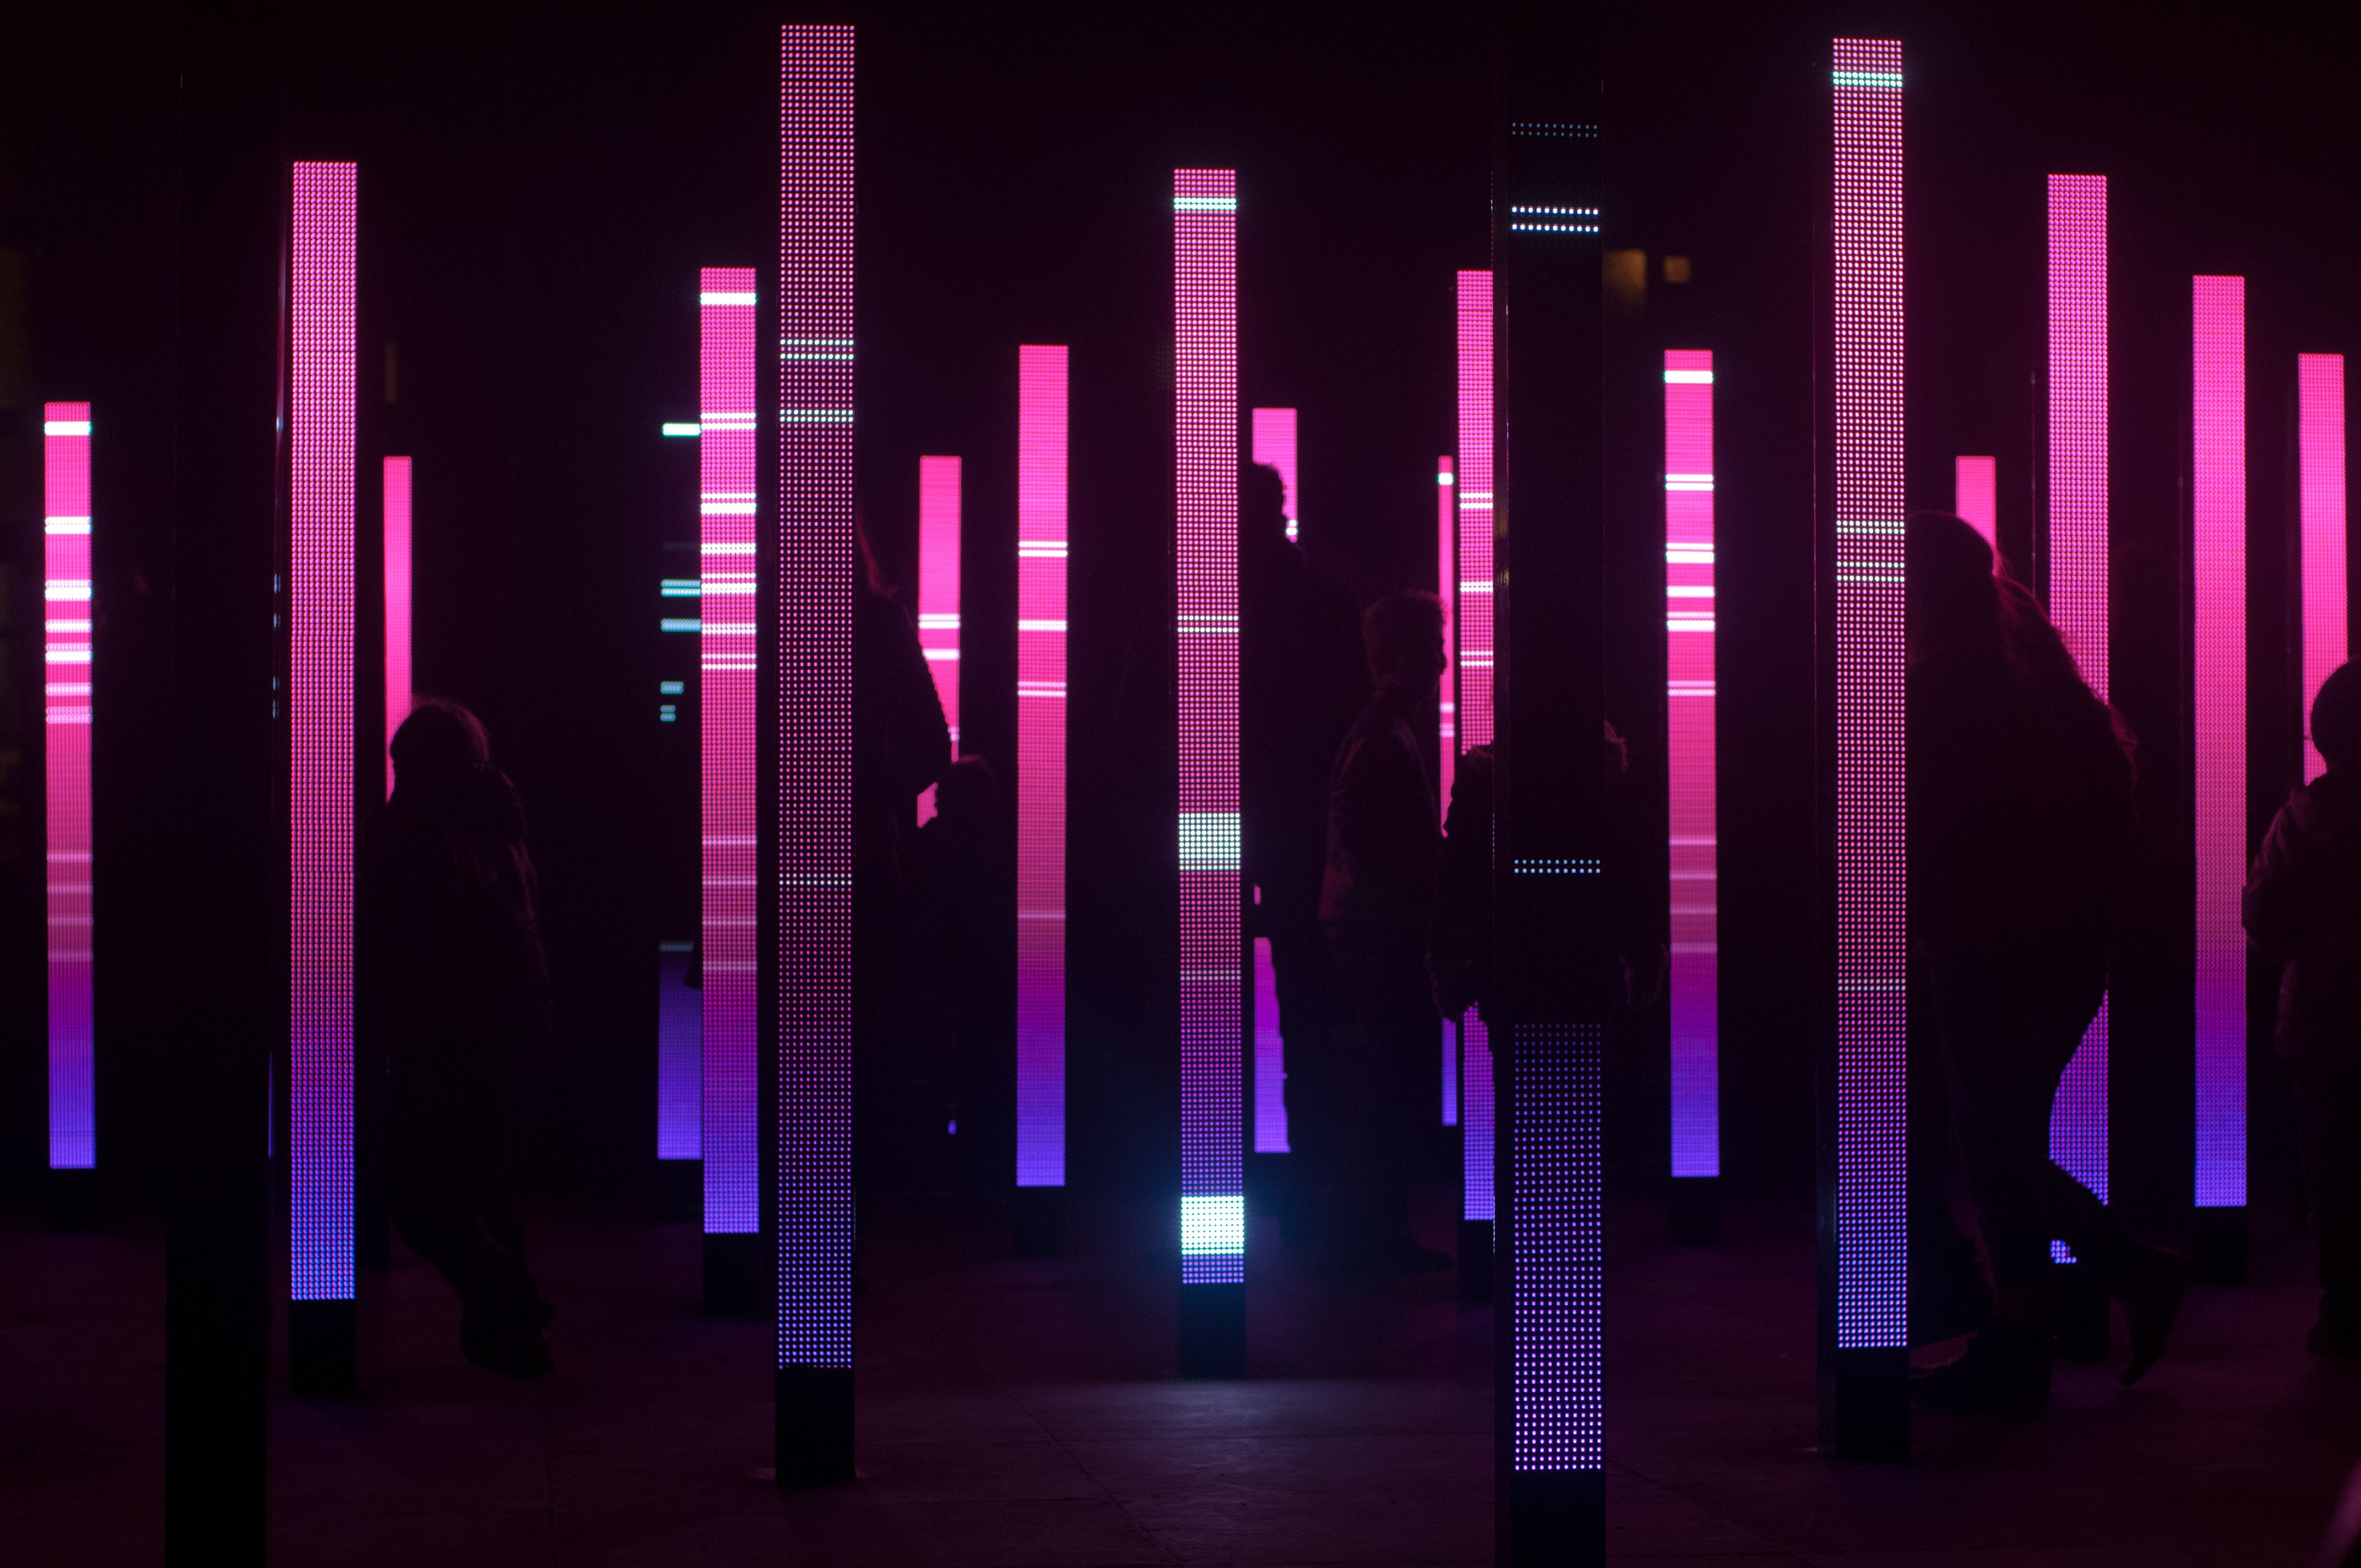 reflector art - Google Search | Highways and Byways | Pinterest ... for Led Light Installation Art  111ane